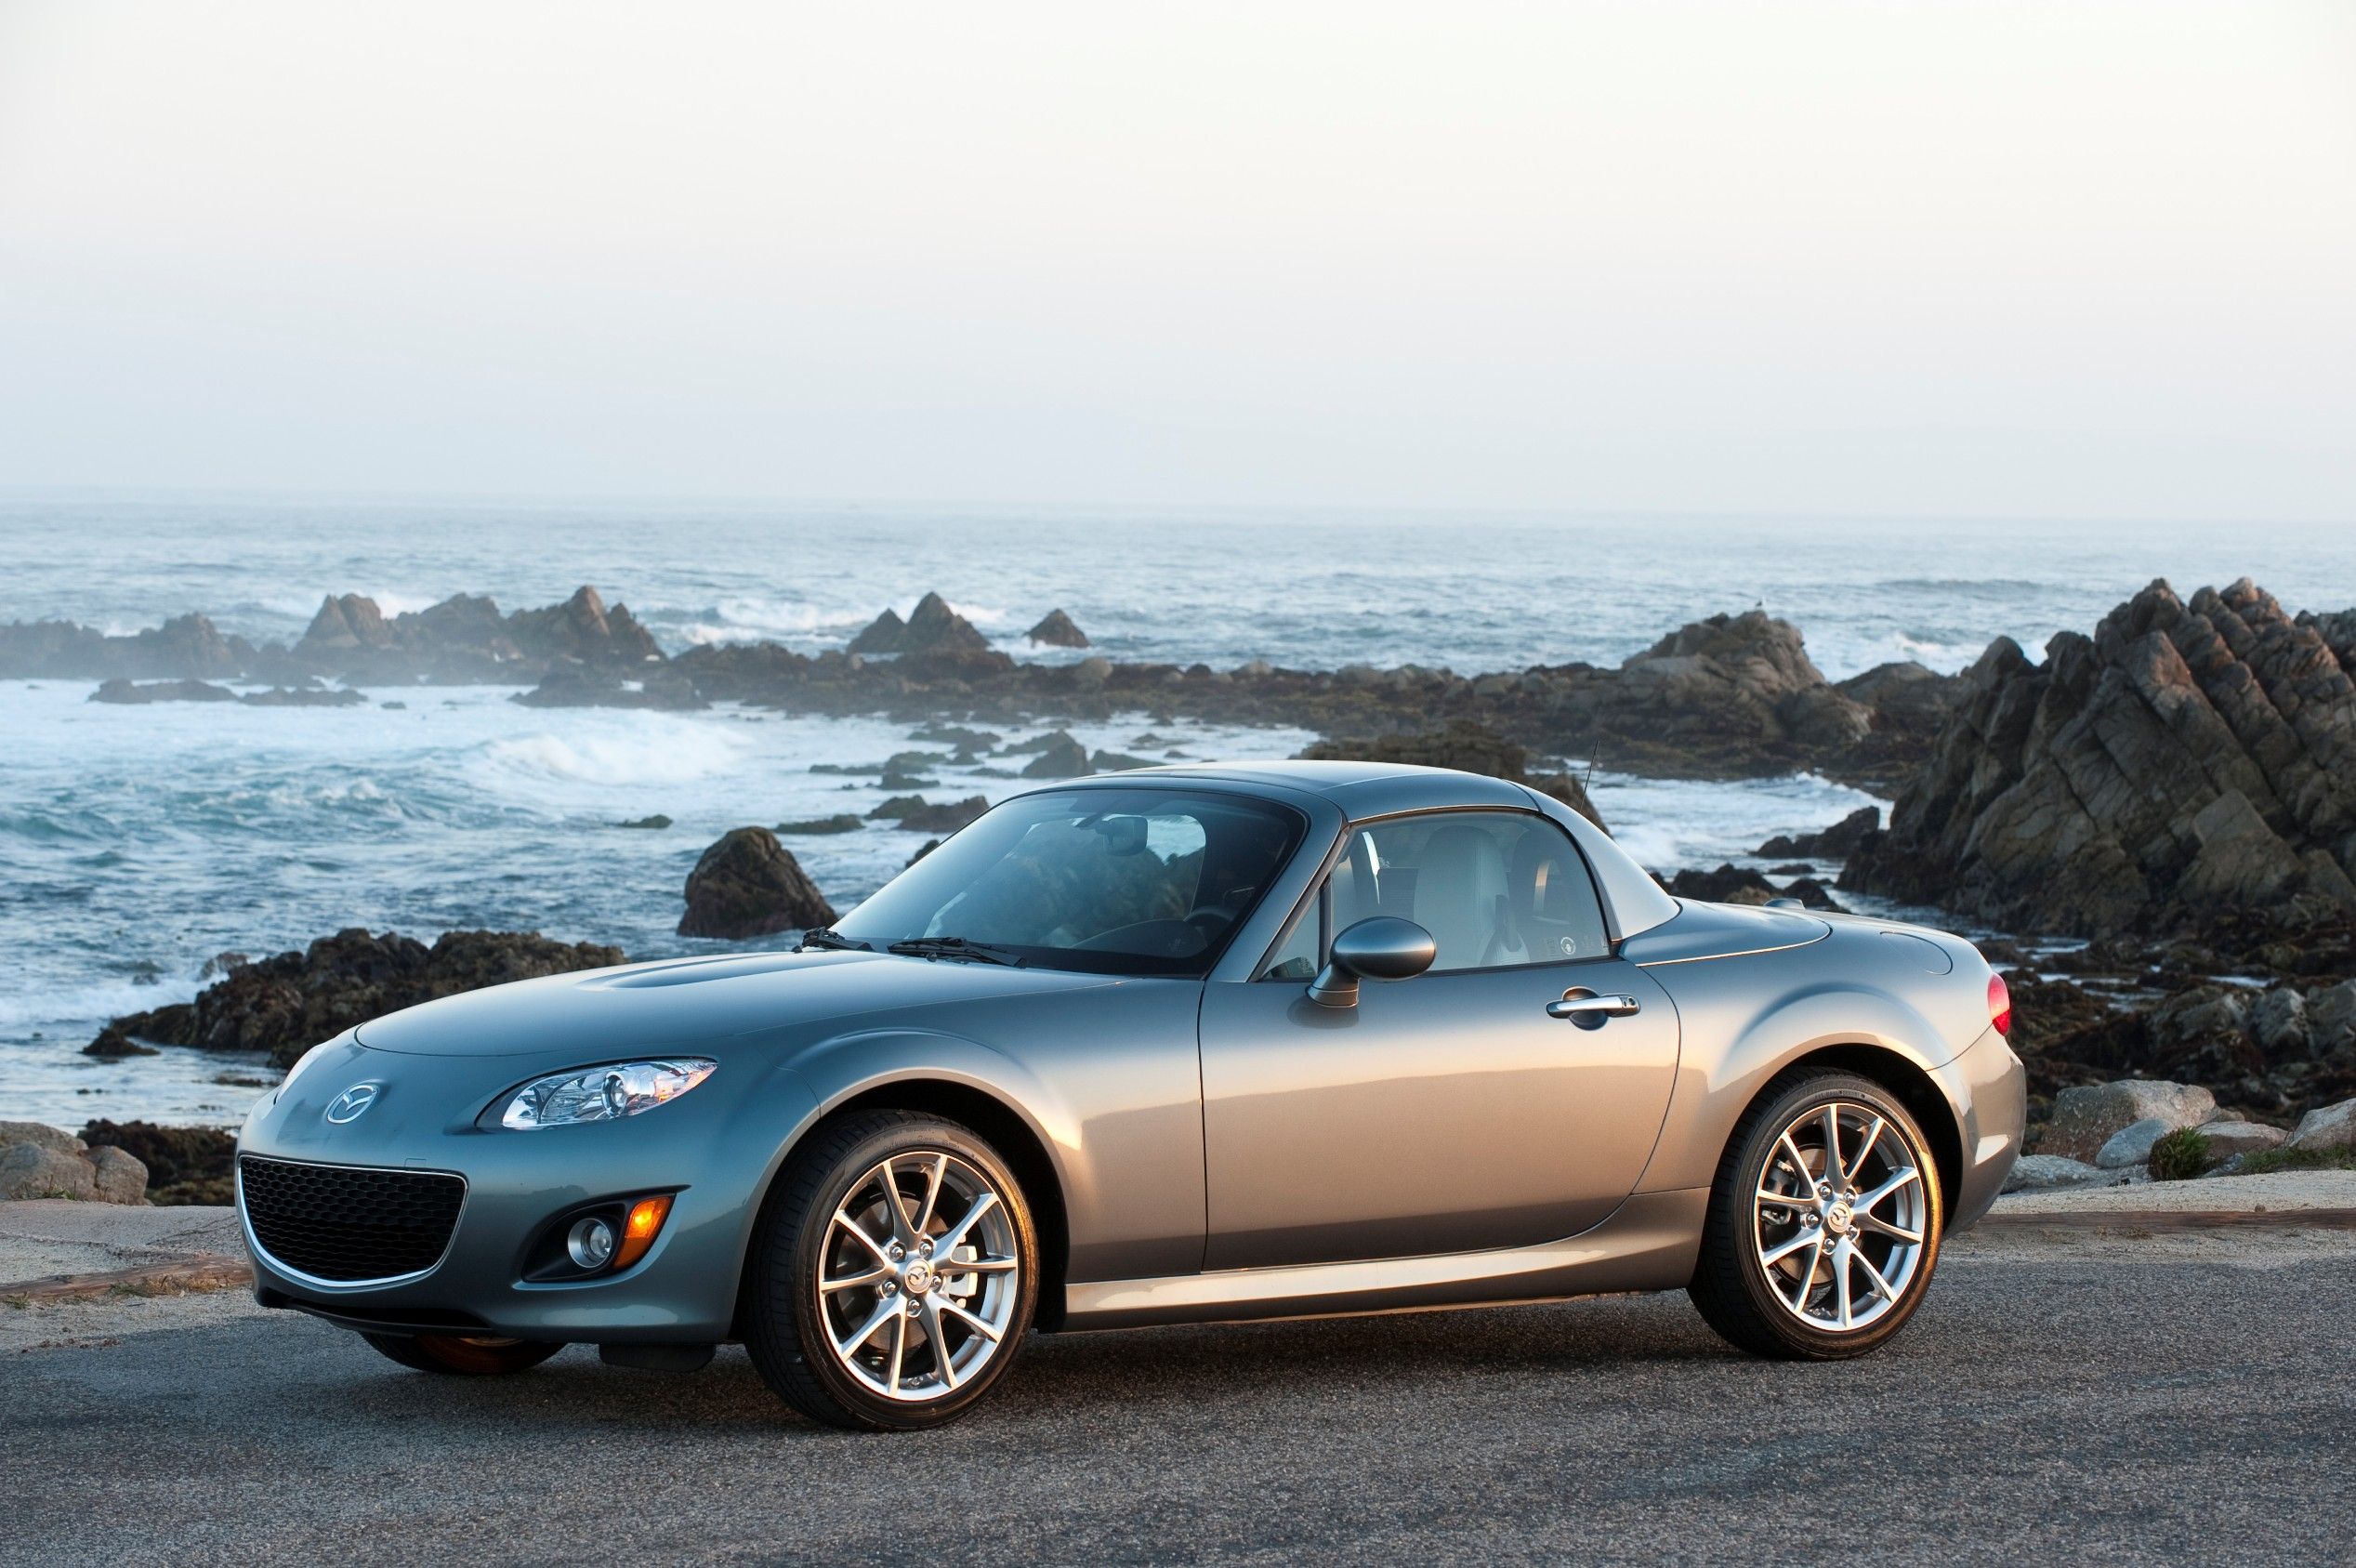 2012 mazda mx 5 miata review and news motorauthority. Black Bedroom Furniture Sets. Home Design Ideas